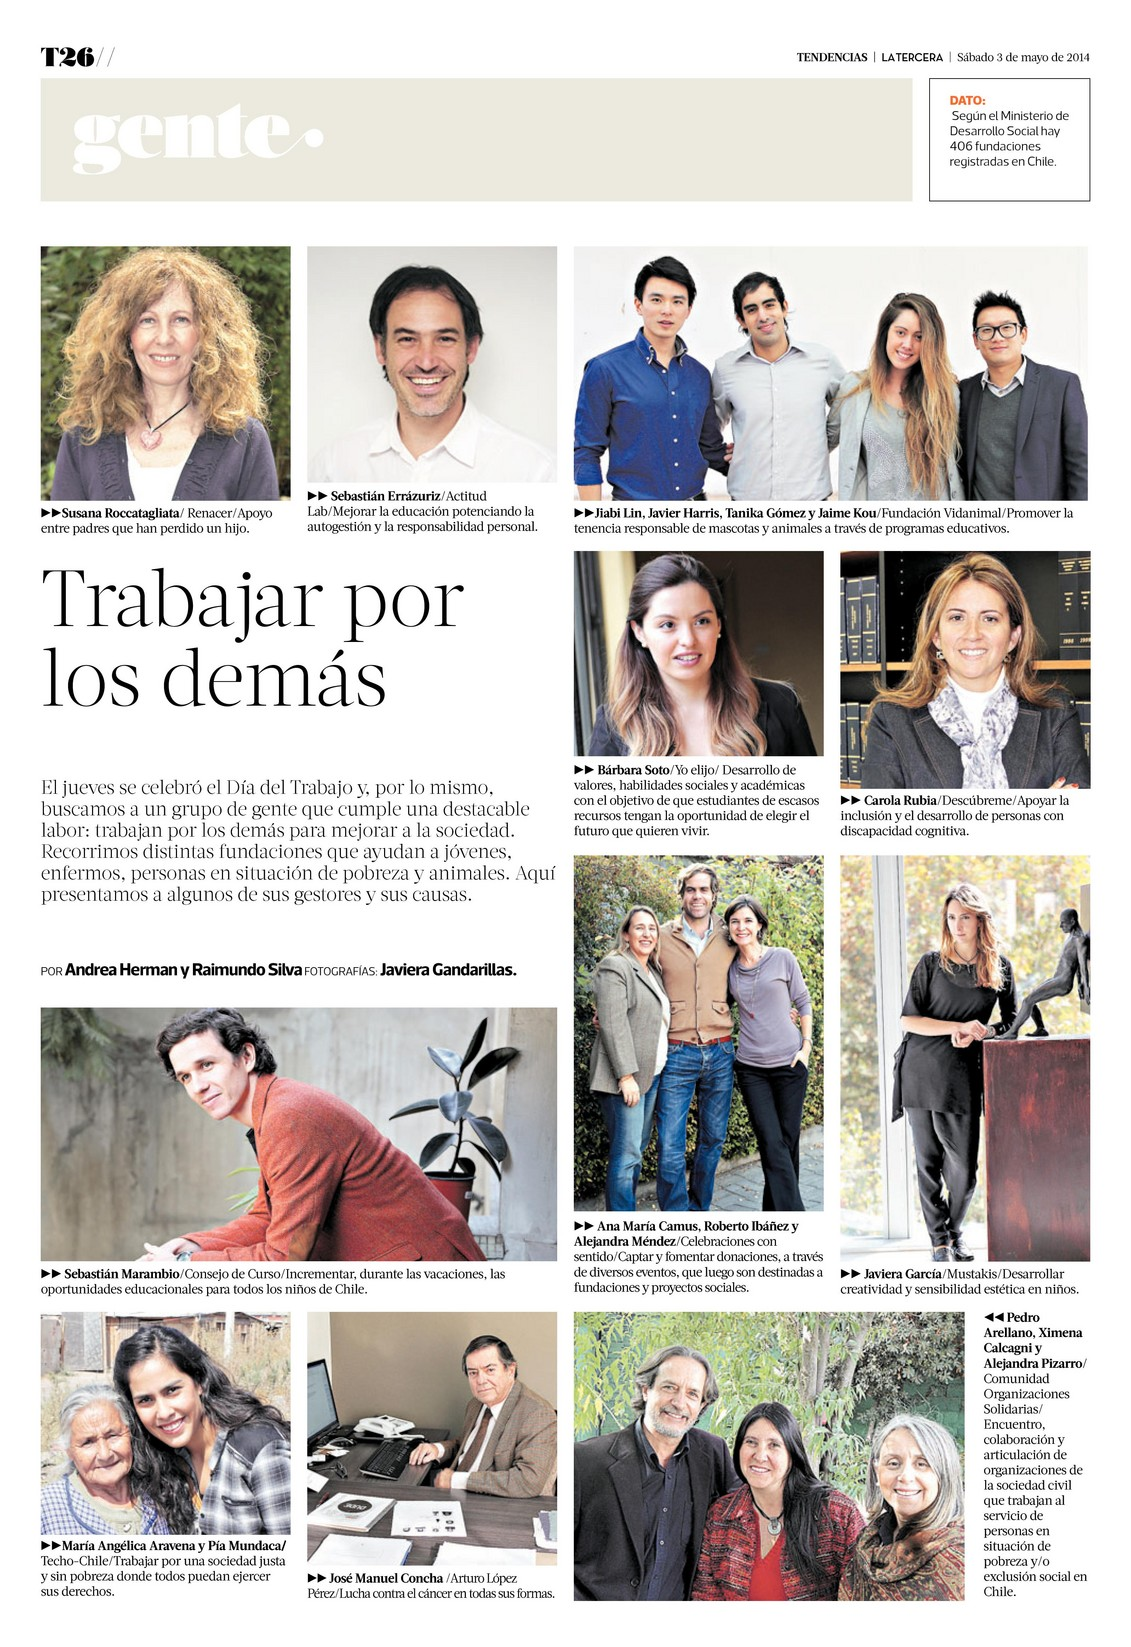 LaTercera-Tendencias-26